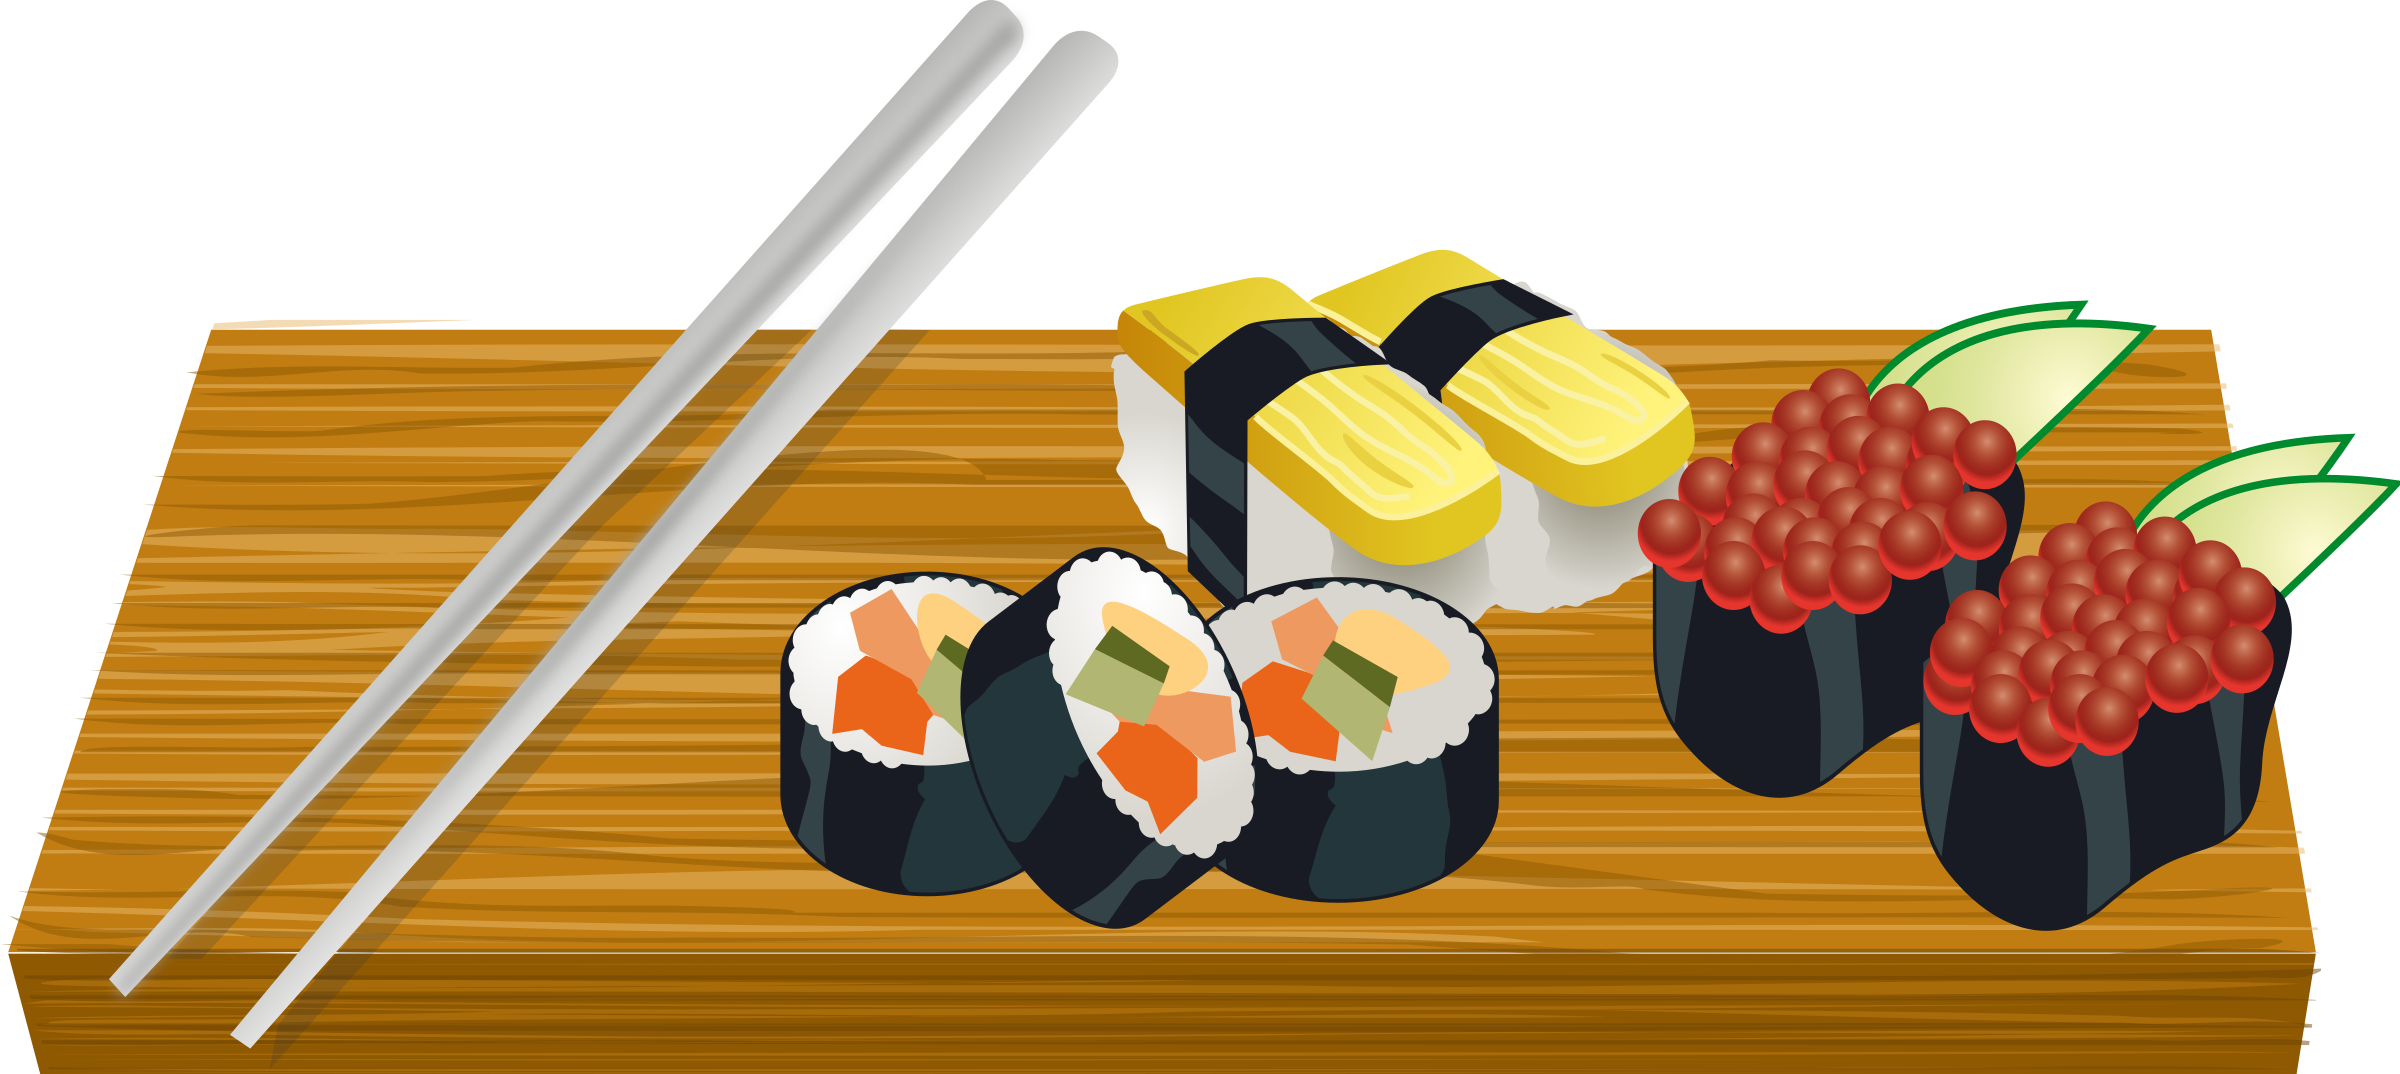 Sushi clipart png 1 » Clipart Station.